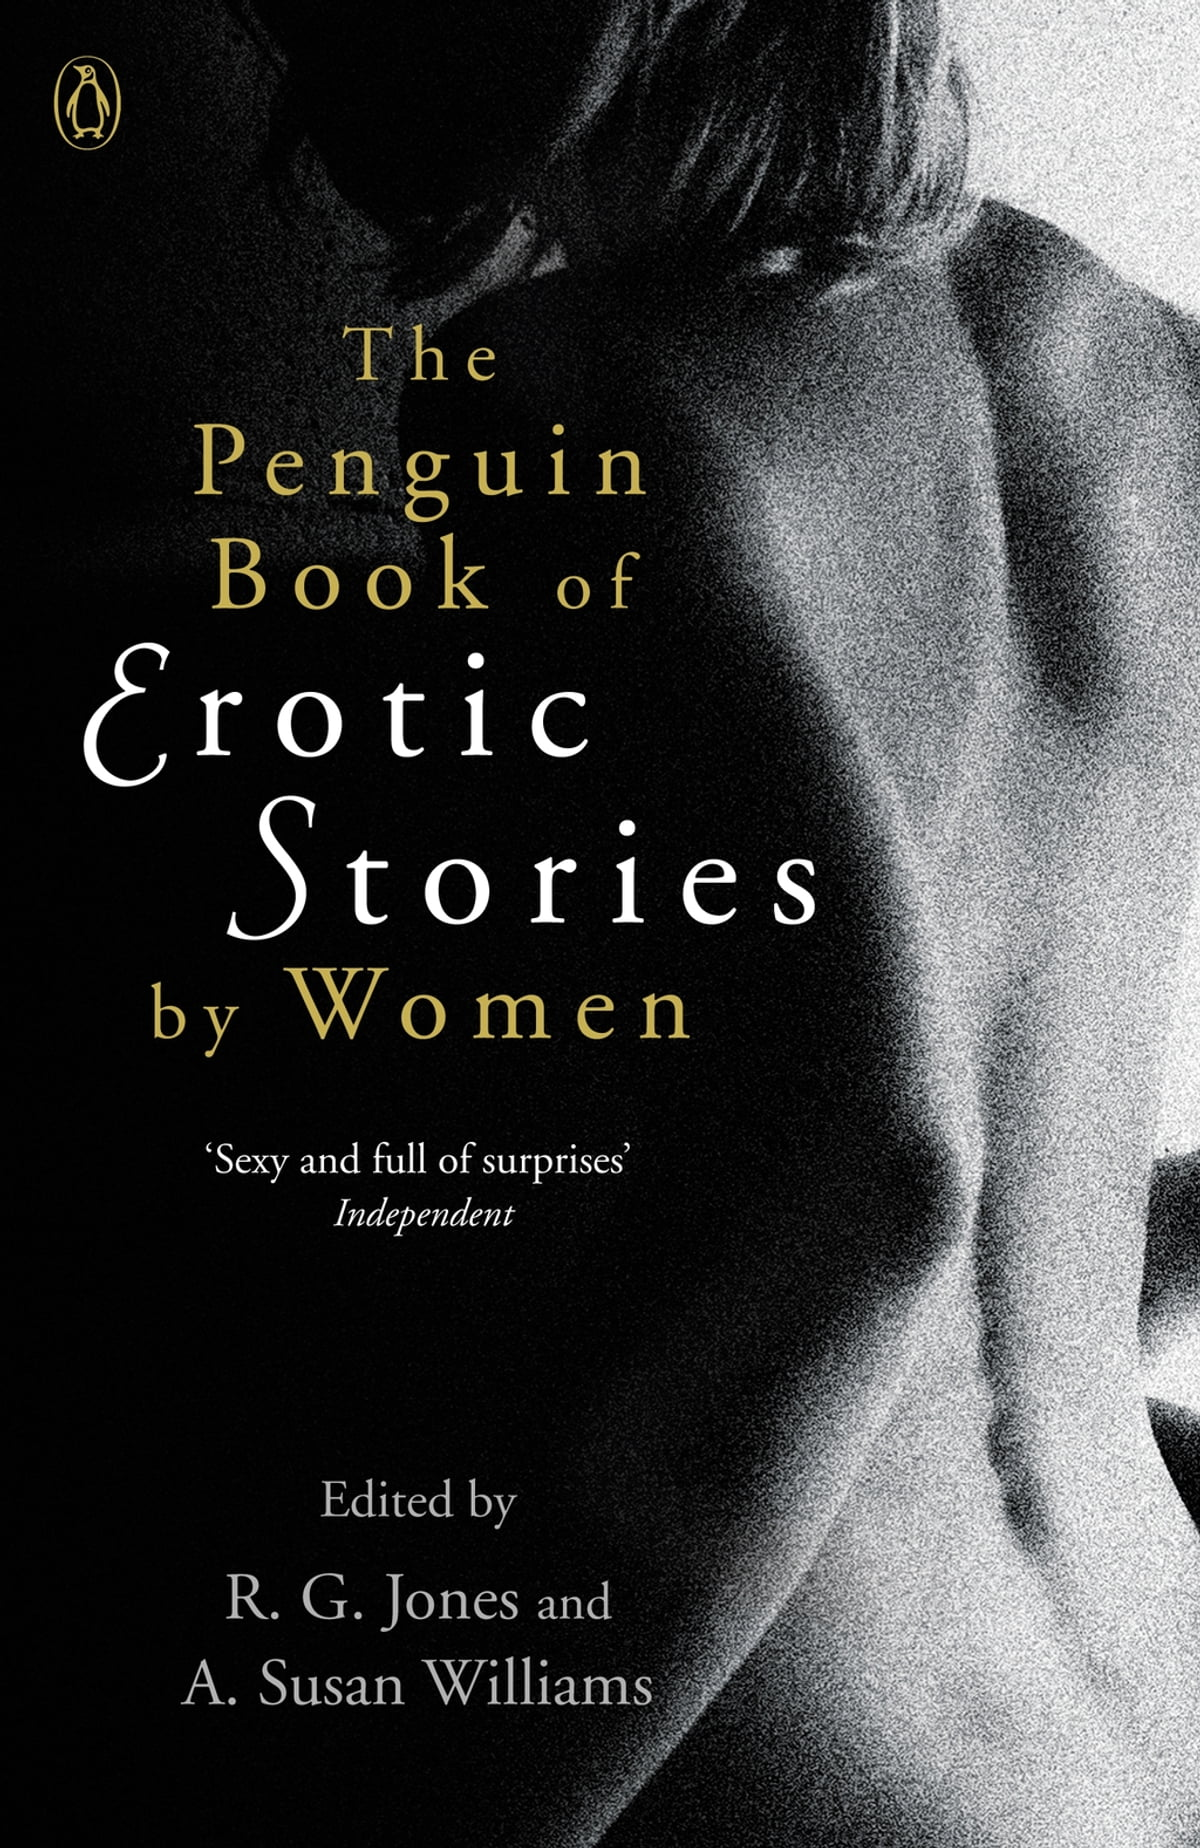 The Penguin Book Of Erotic Stories By Women Ebook By Dr A Susan Williams 9780241965689 Rakuten Kobo